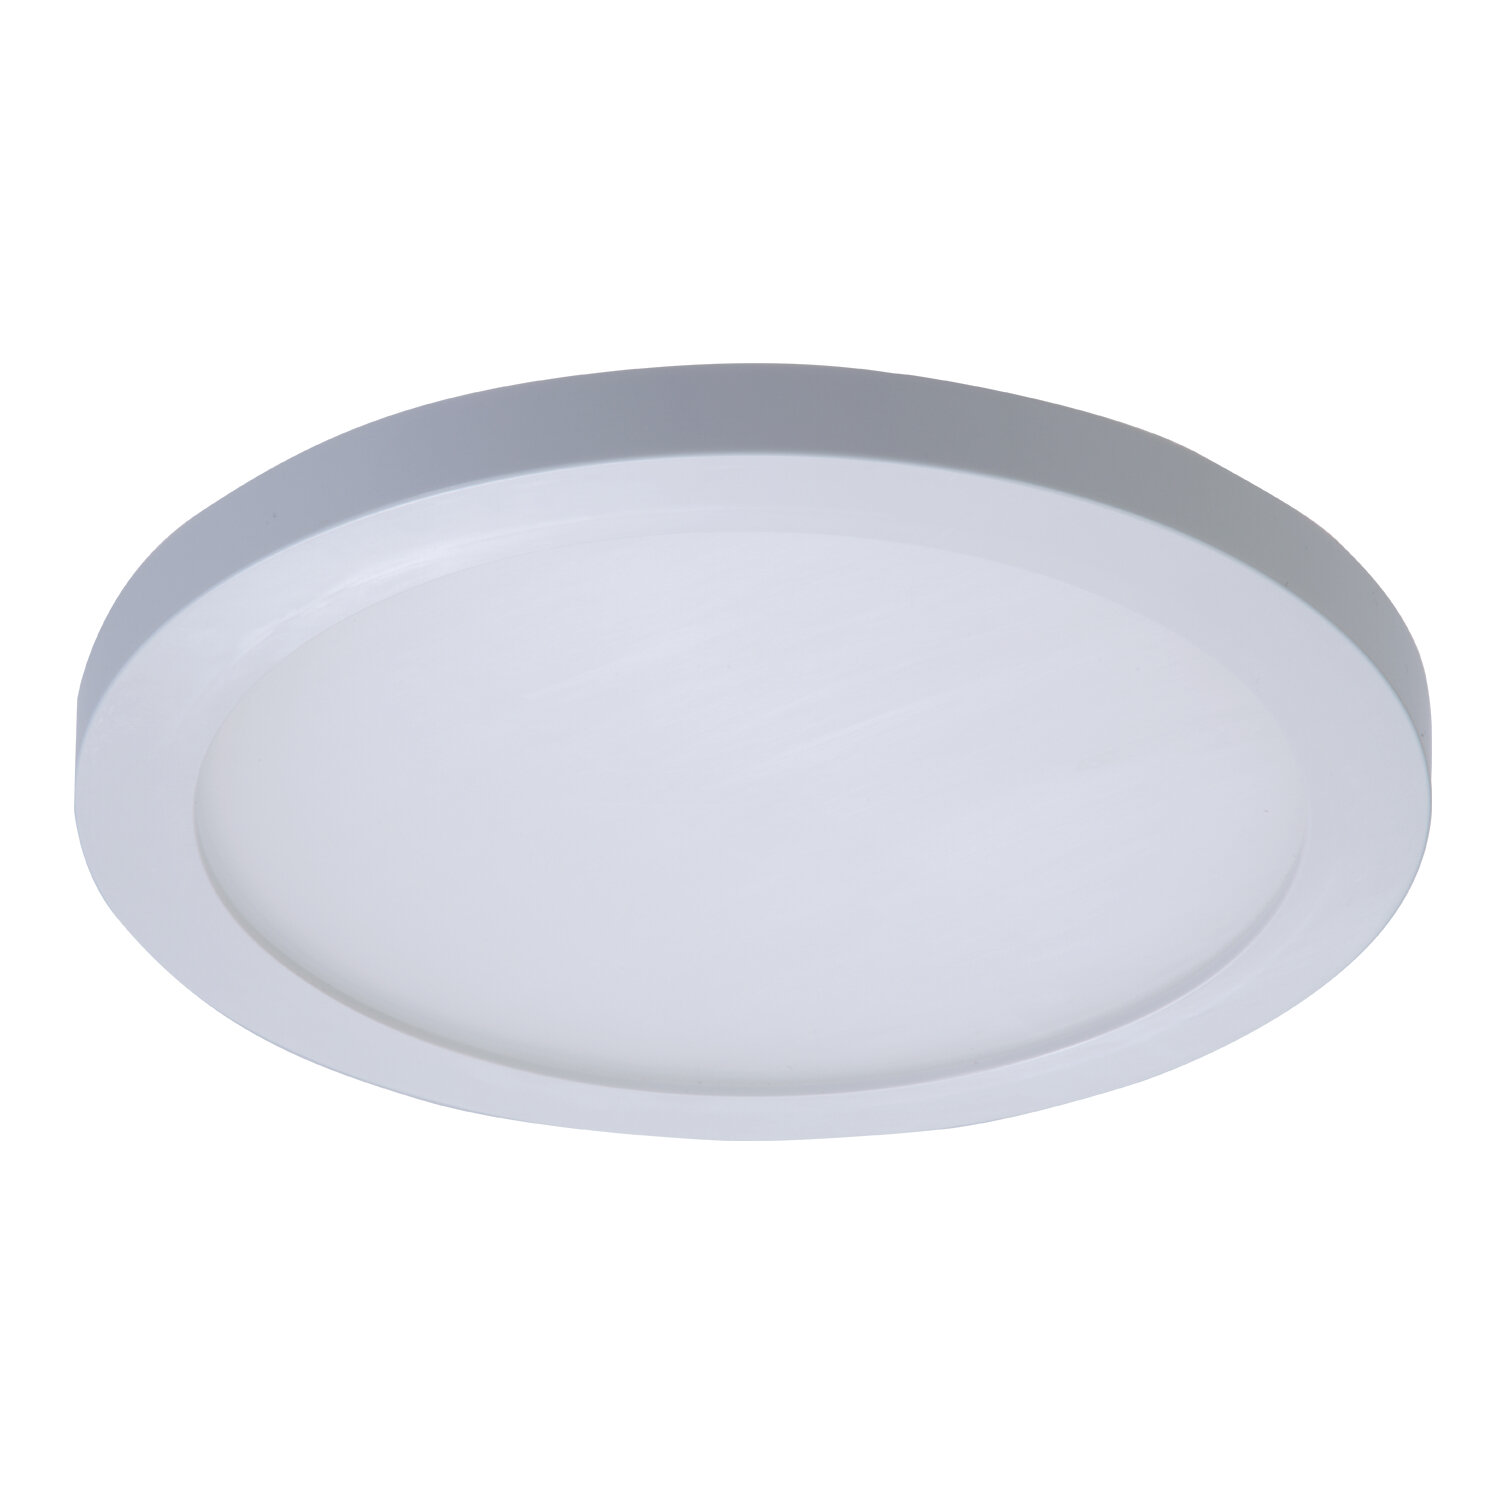 Halo 6 surface mount led downlight eyeball recessed trim wayfair mozeypictures Gallery